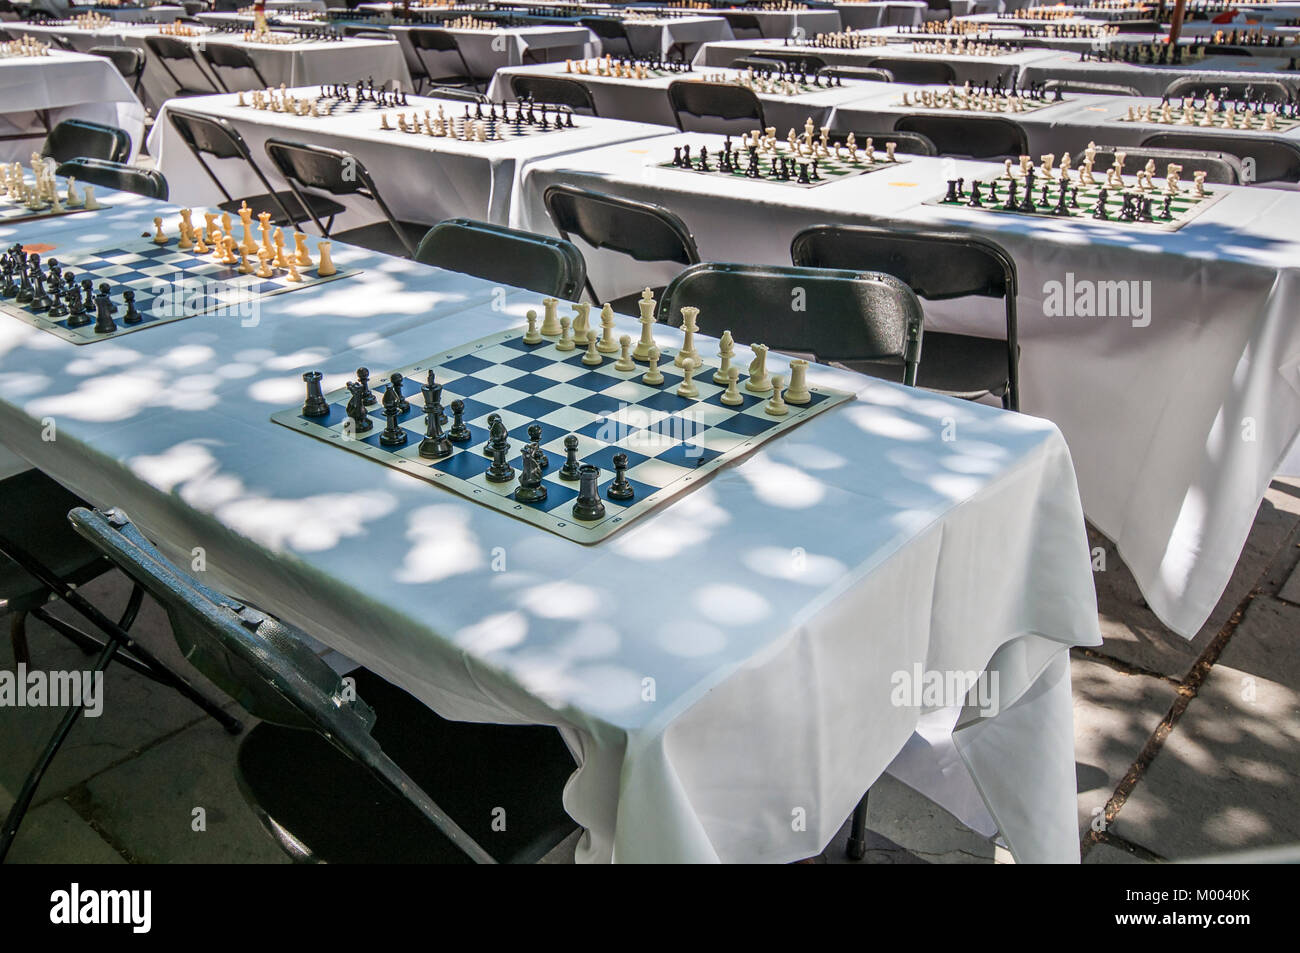 Numerous chessboards with black and white chess pieces are set up on tables with white linen cloths ready for an - Stock Image